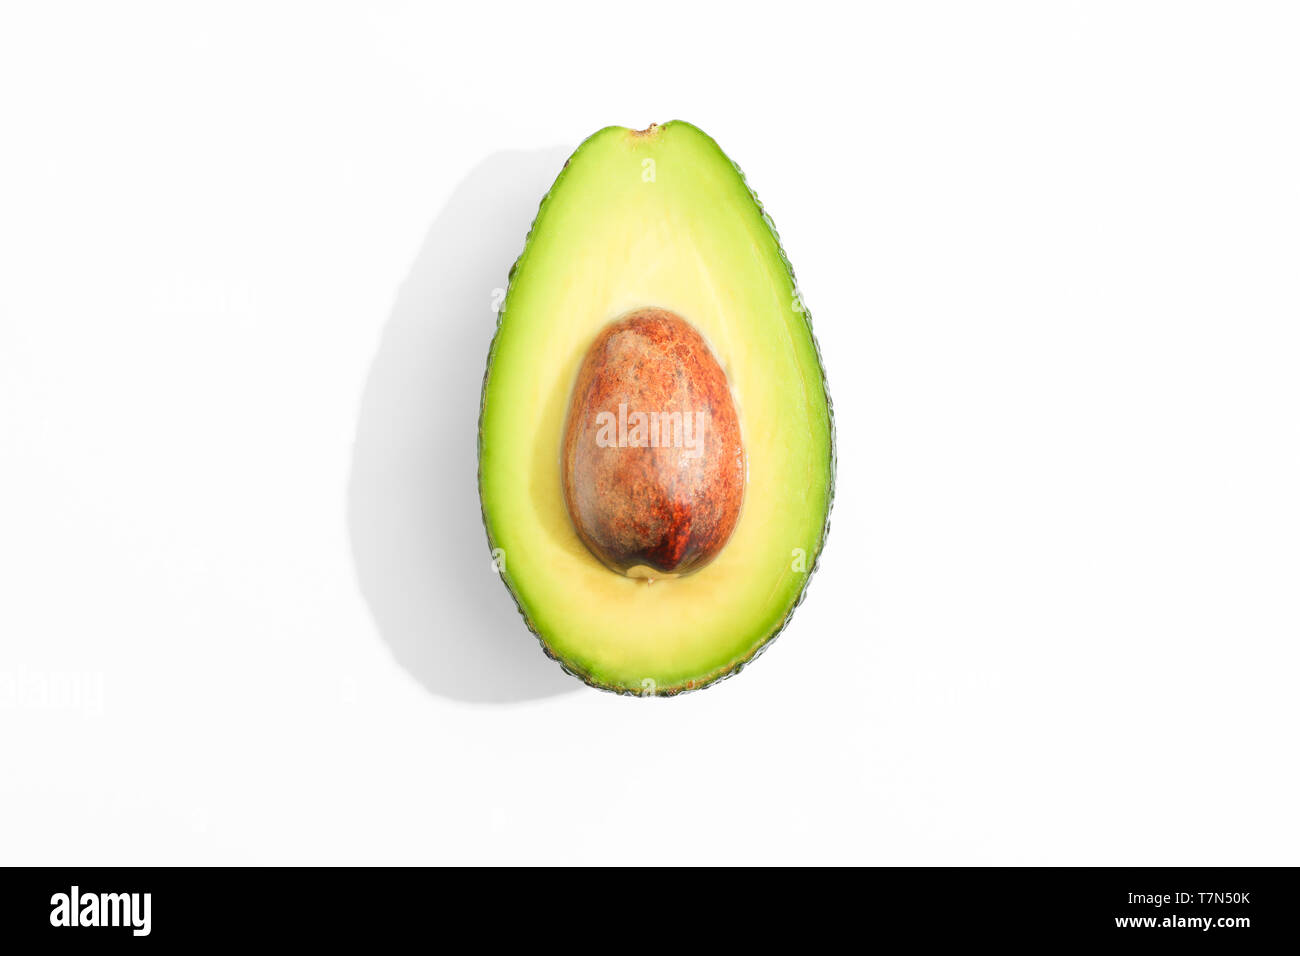 Rip cut avocado on white background, space for text - Stock Image